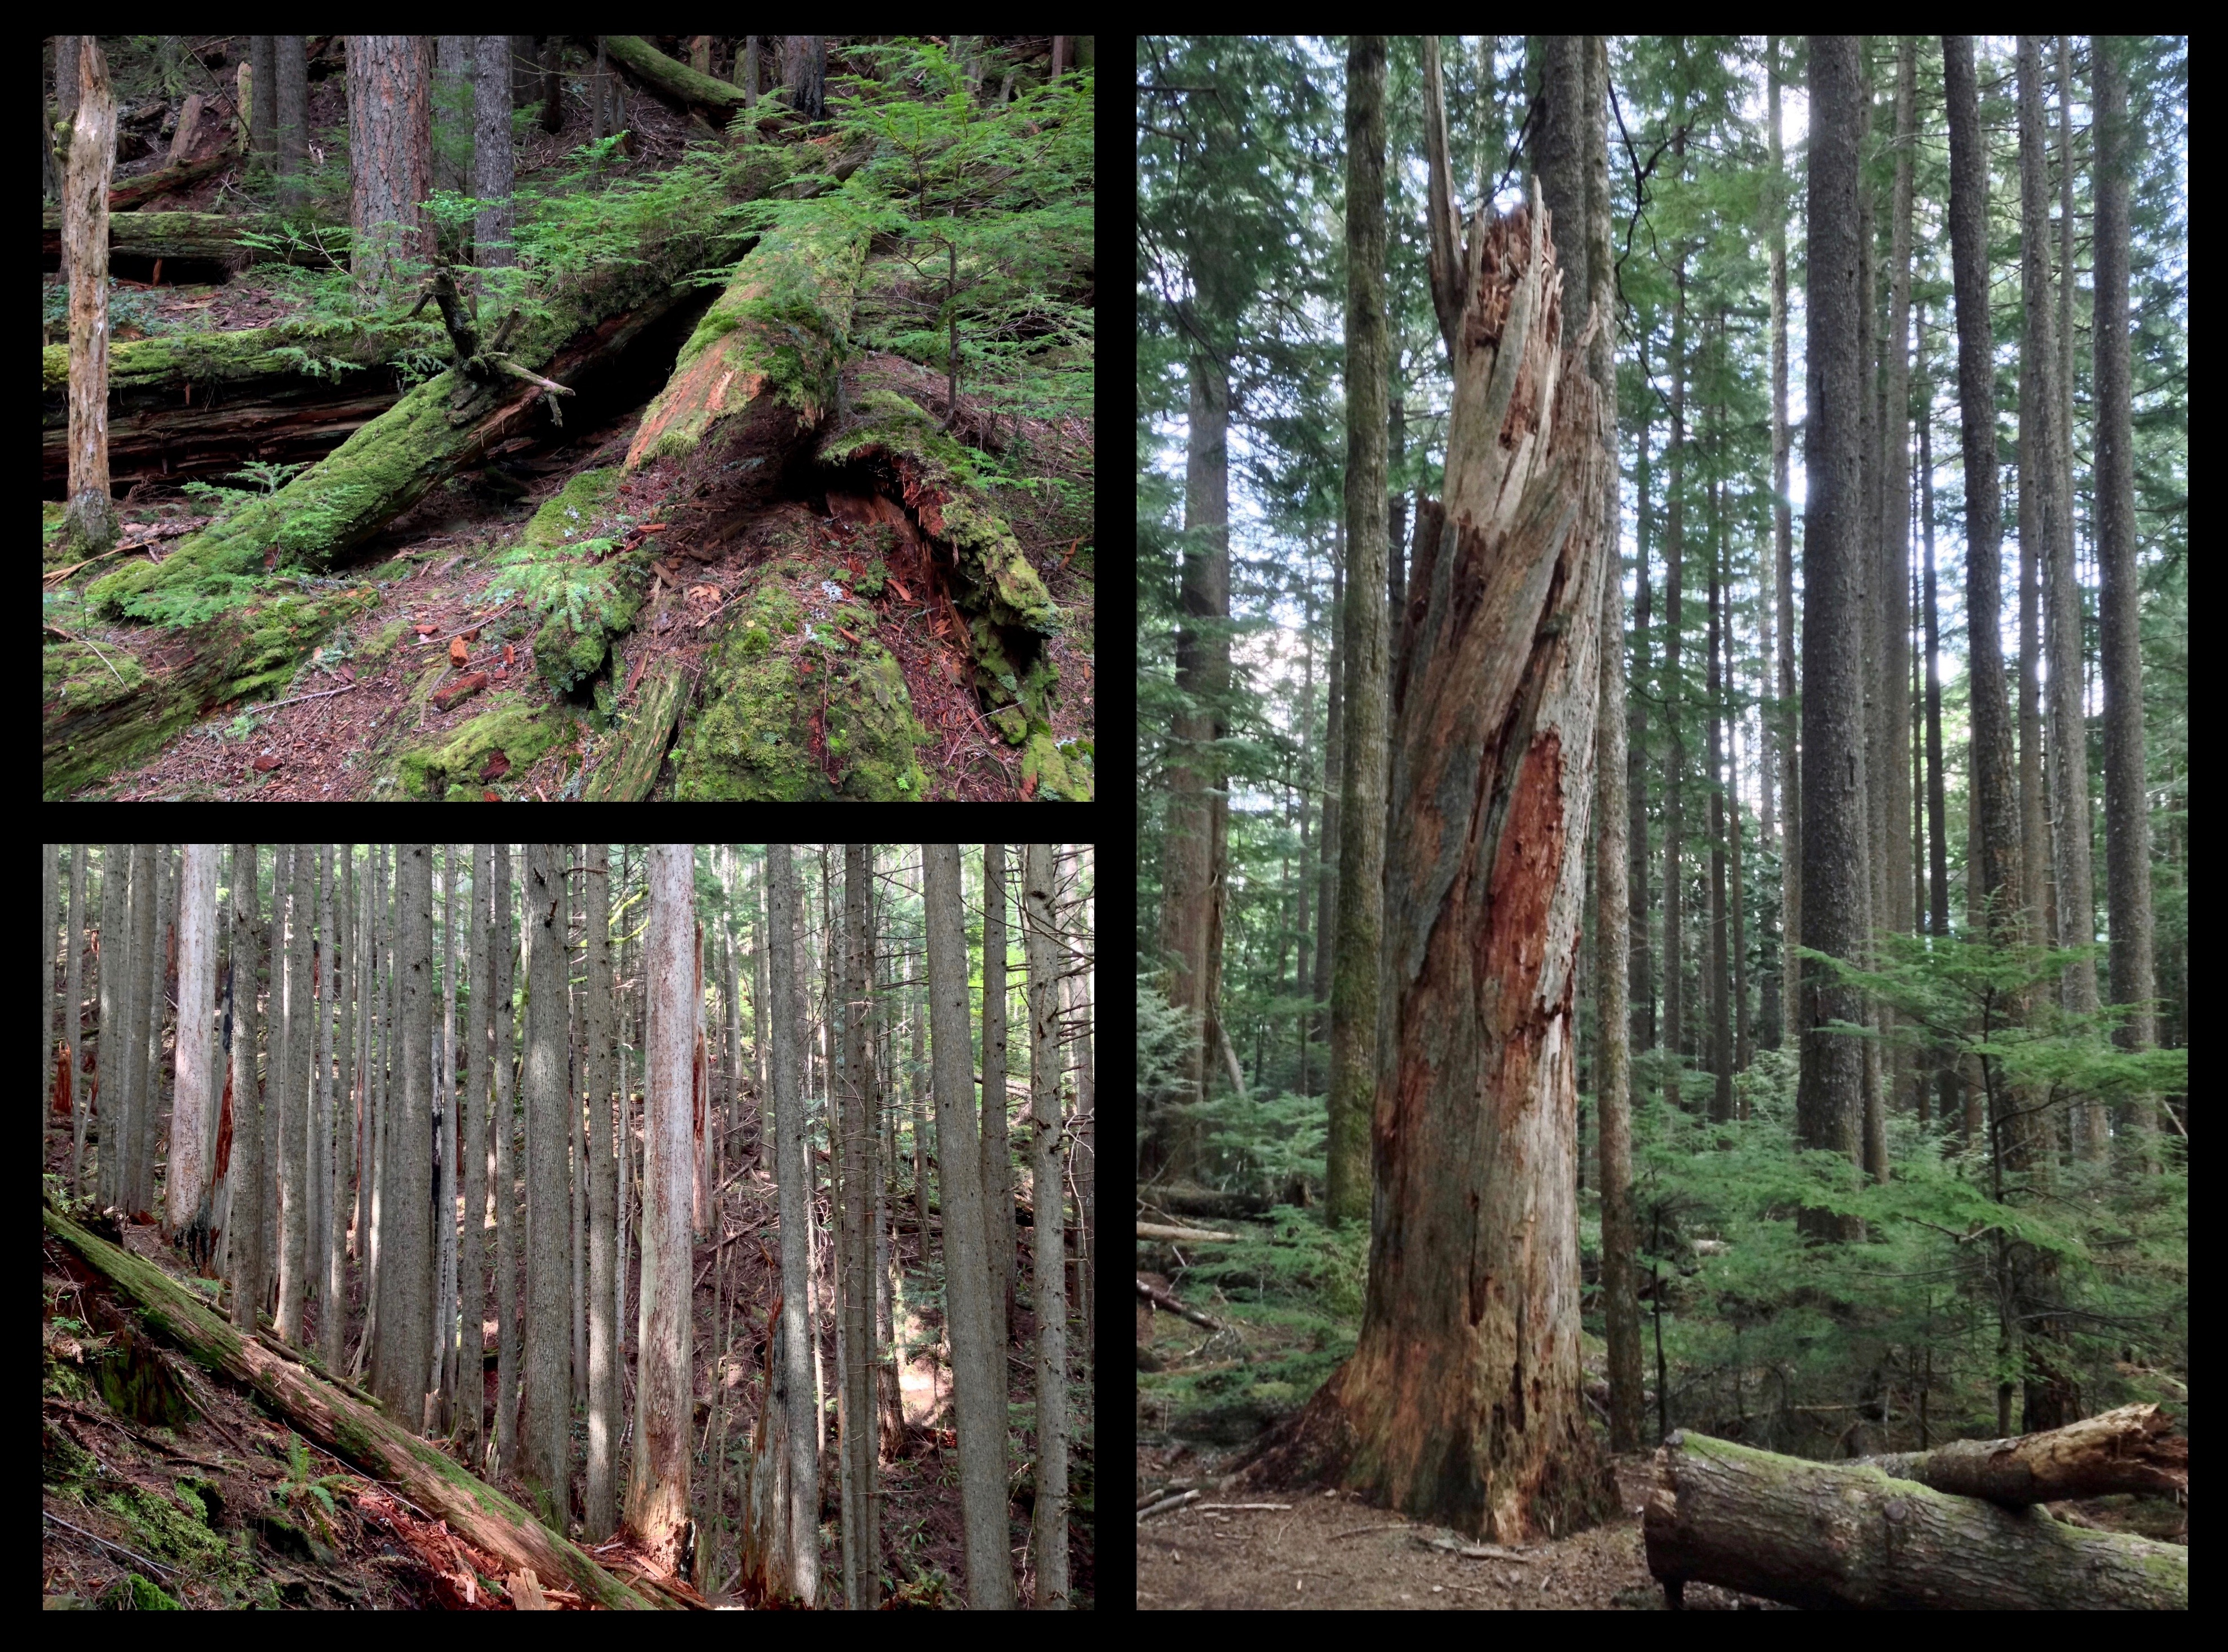 Just after its upper junction with the Talus Loop, the main trail reaches Snag Flat, where, in 1910, an entrenched forest fire smoldered for weeks. The conflagration's damage is still evident in the dead trees standing and, mostly, strewn across this relatively level section of the forest floor (hence the name) and in the charred bark blackening the survivors. Beyond Snag Flat, the lush forest gives way to the stunted, less diverse woodland of higher elevation. Mount Si Trail, May 24, 2014.